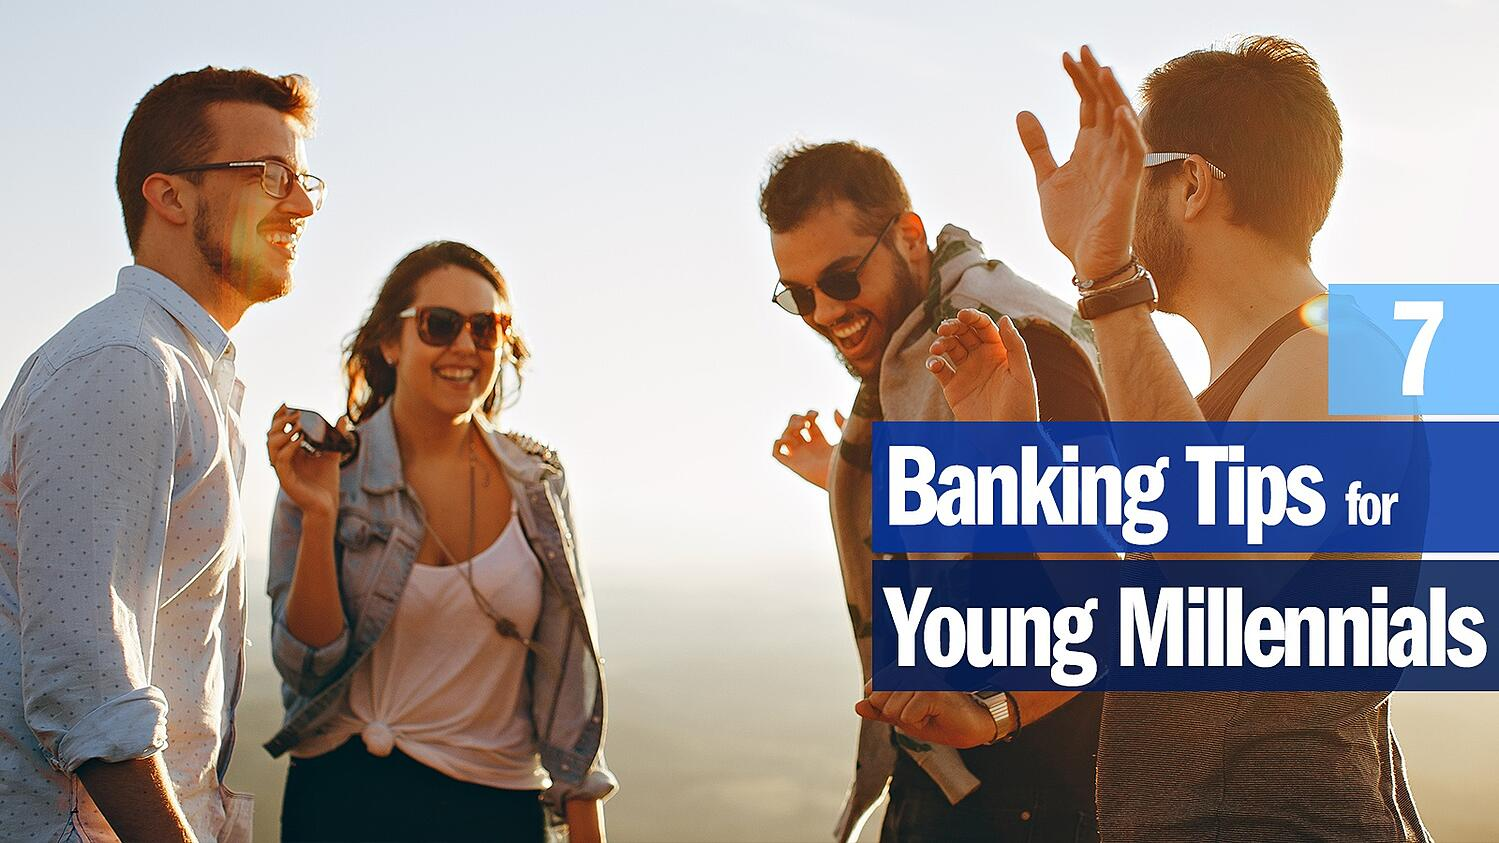 7 Banking Tips for Young Millennials